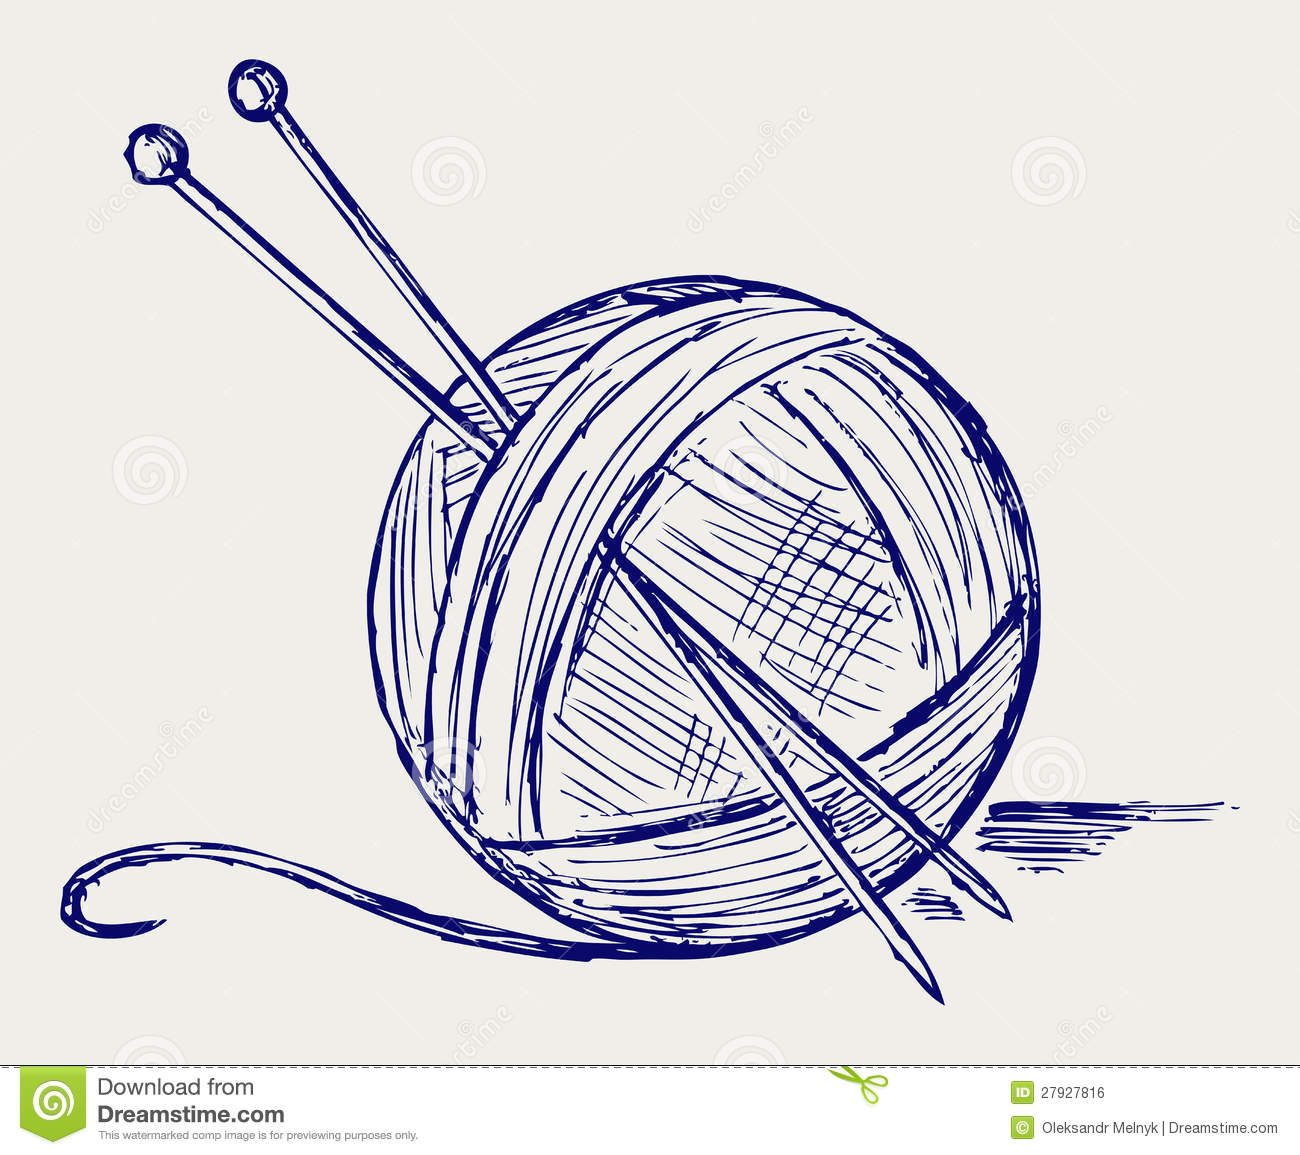 Drawing Knitting Needles : Yarn balls with needles stock vector illustration of